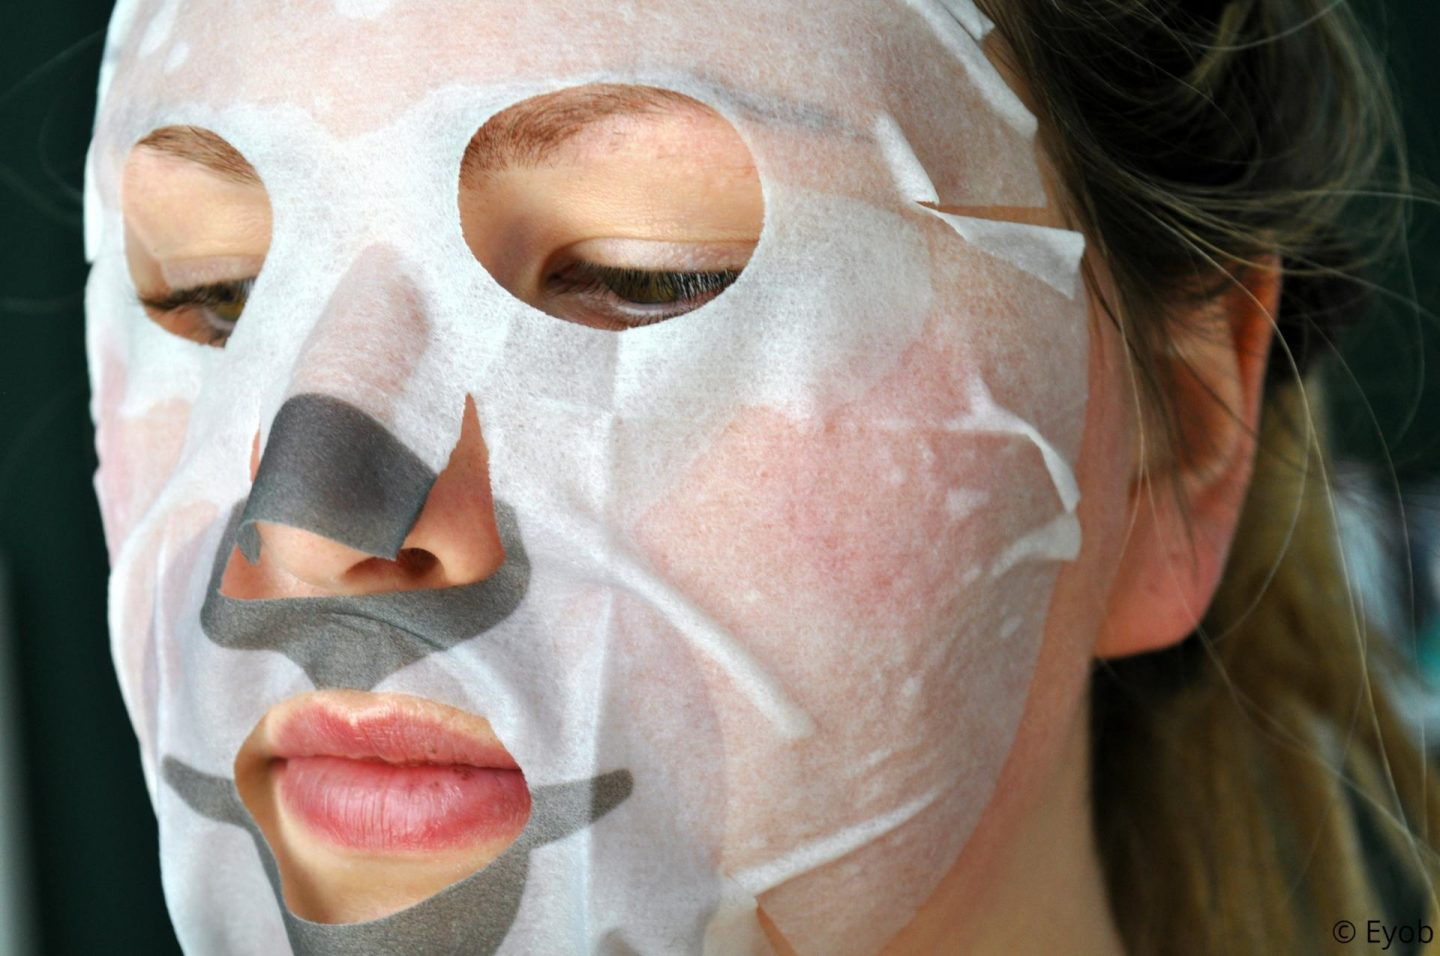 Hema Sheet masks